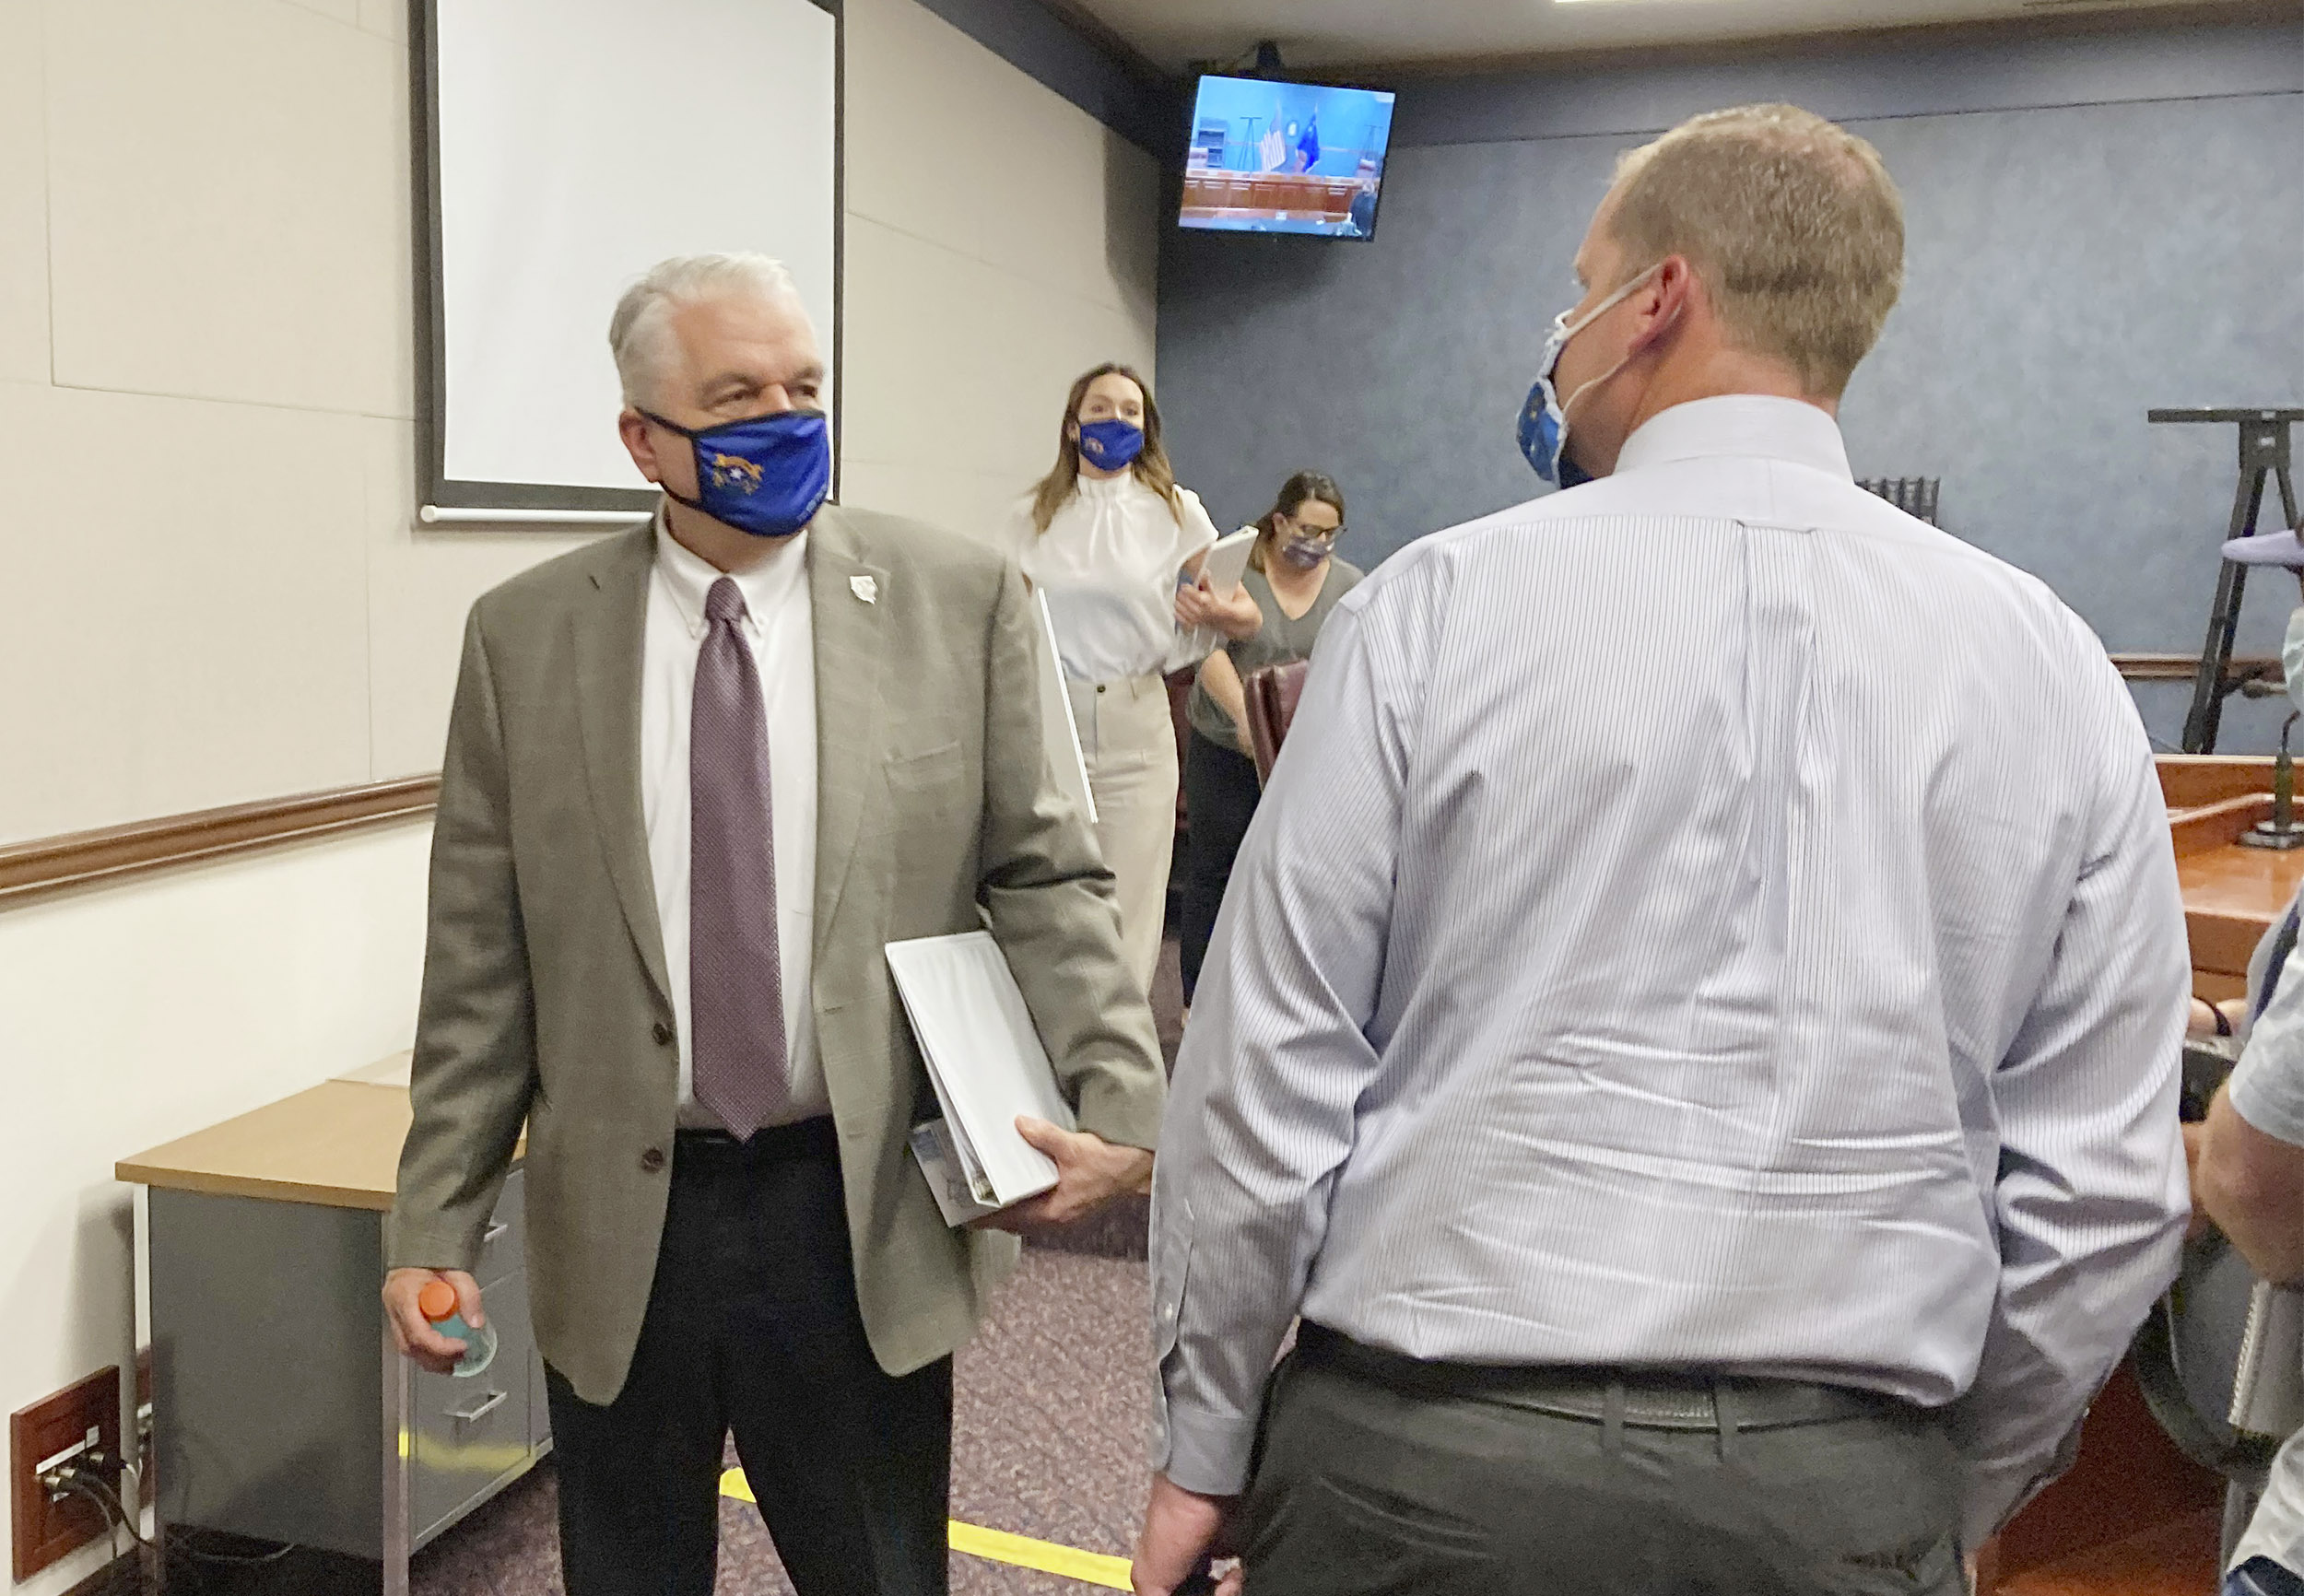 Gov. Steve Sisolak exits a news conference at the Nevada State Legislature in Carson City, Nevada on Wednesday, June 24.